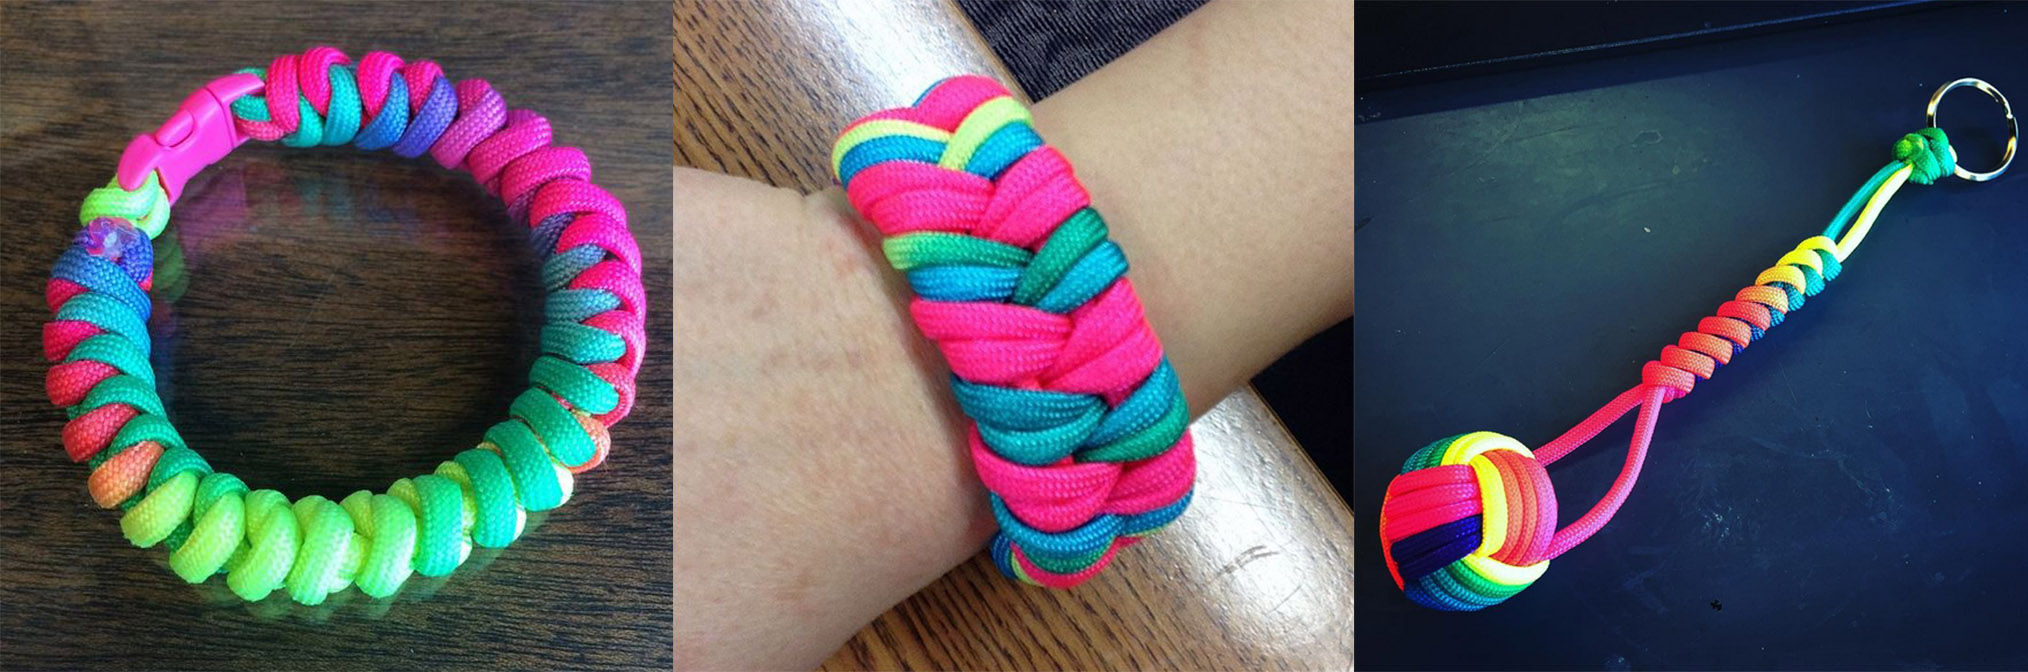 Neon Rainbow Paracord Projects